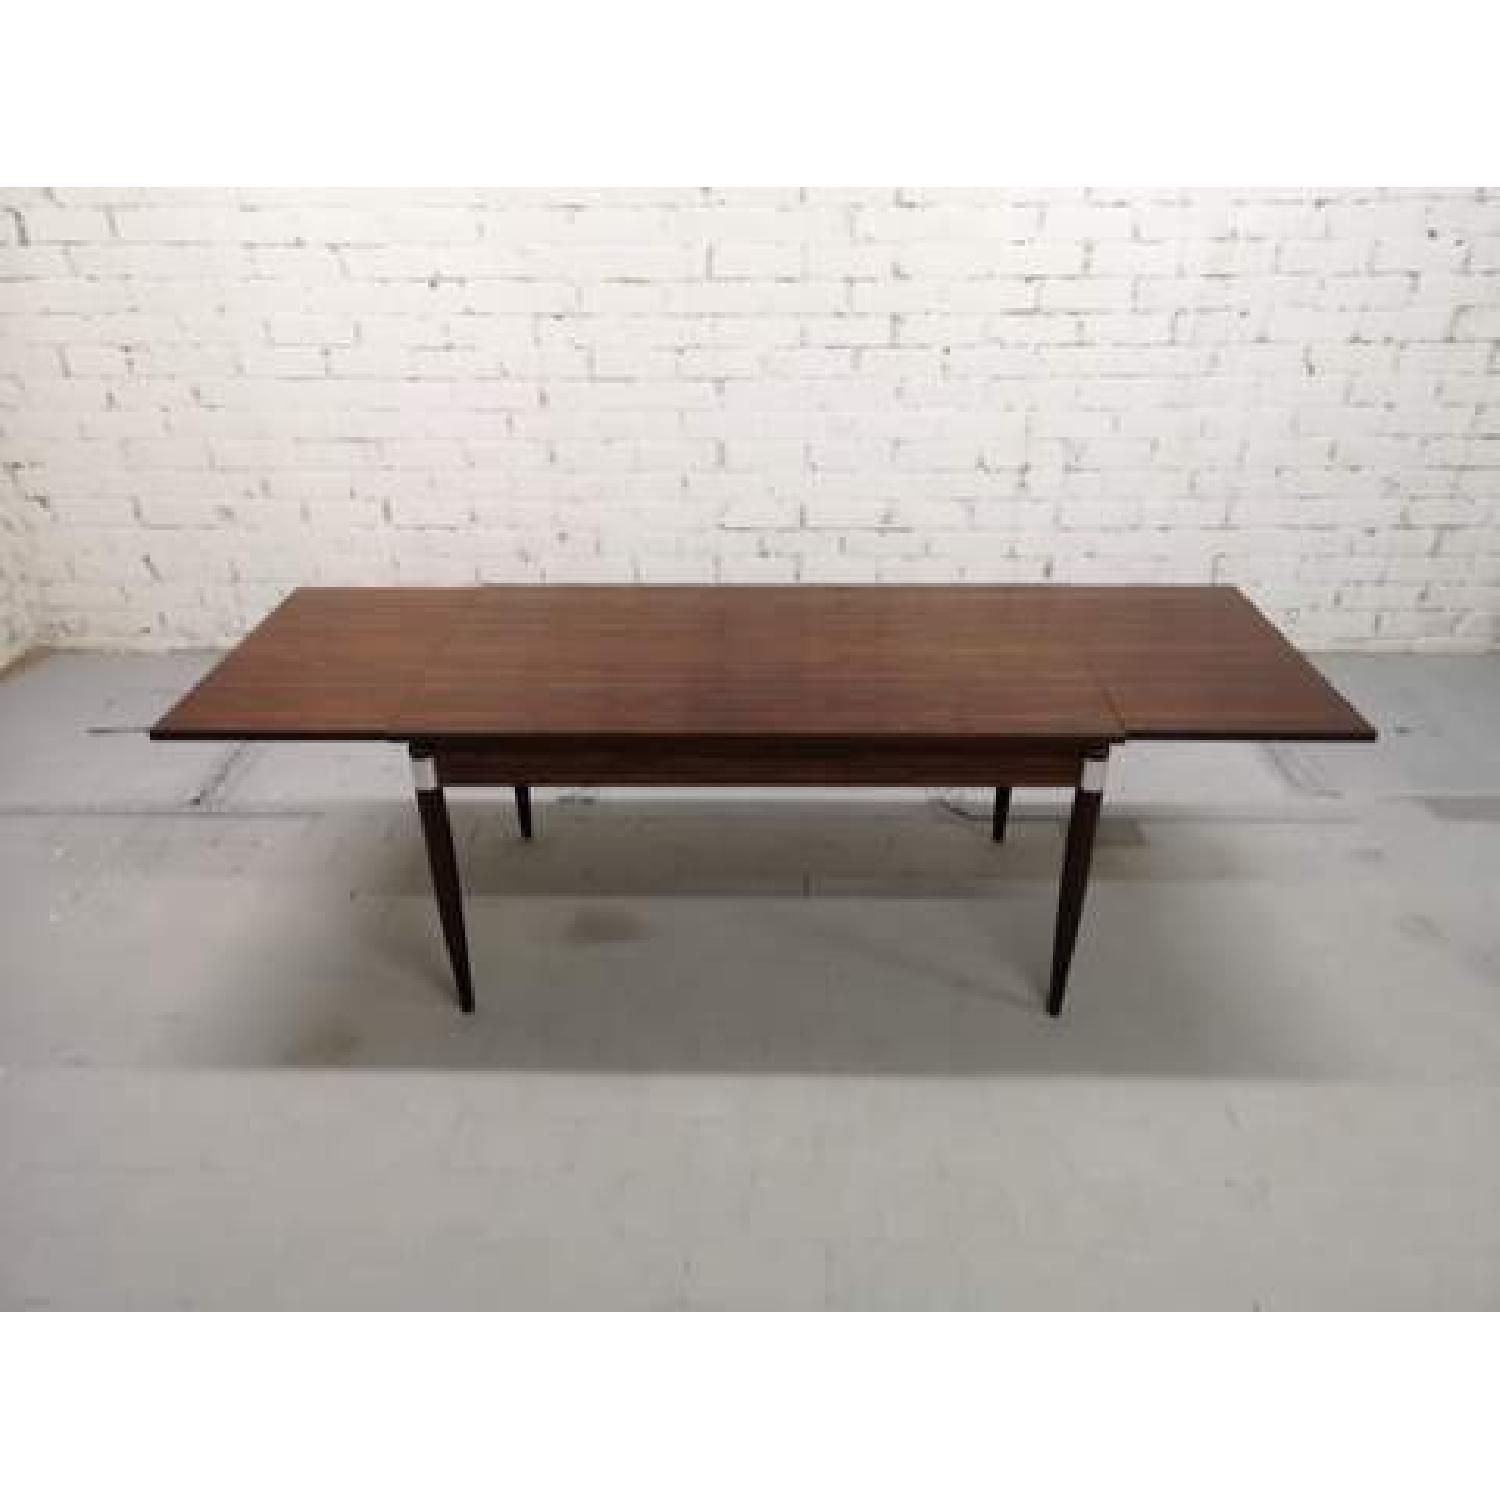 Mid-Century Modern Design Extendable Draw Leaf Dining Table - image-1